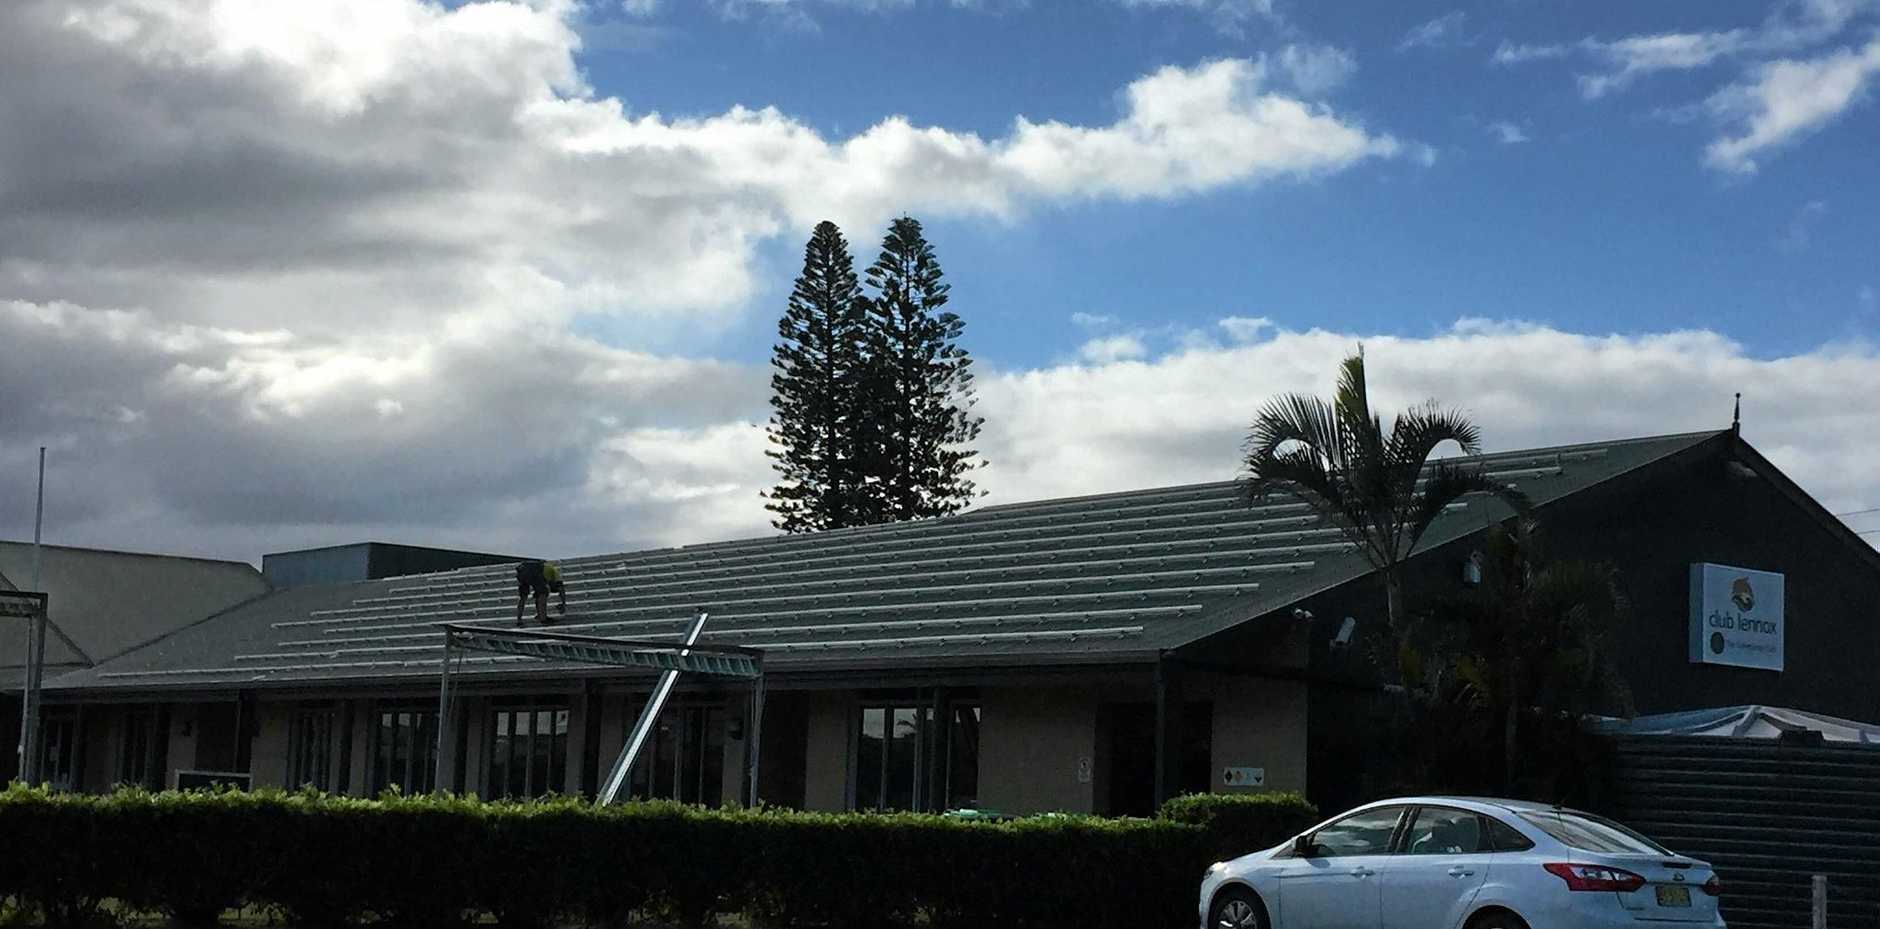 Club Lennox has announced its newest green initiative, investing more than $70,000 in a 68kw roof top solar system.